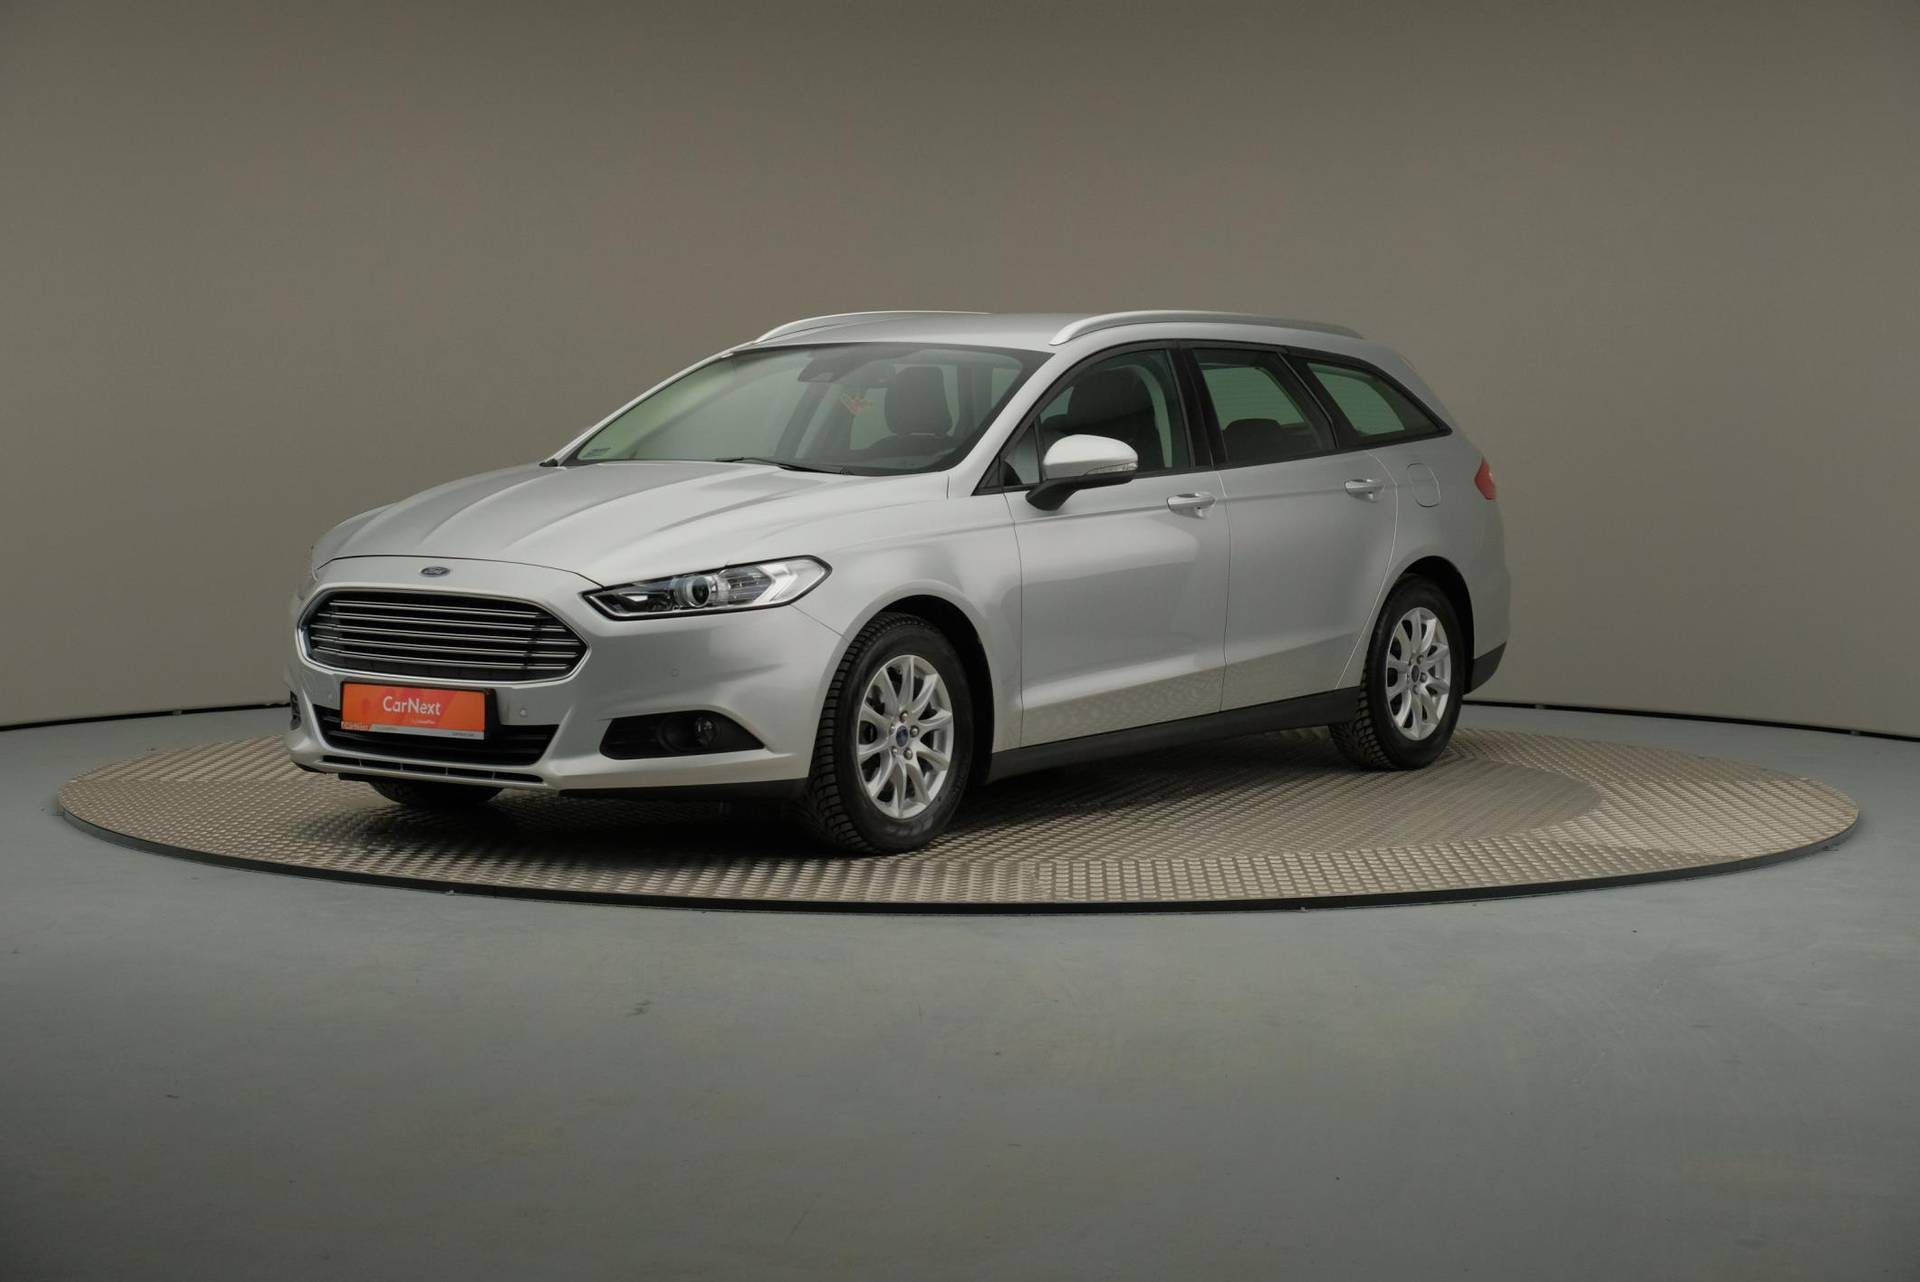 Ford Mondeo Turnier 1.5 Eco Boost Start-Stopp, Trend, 360-image35